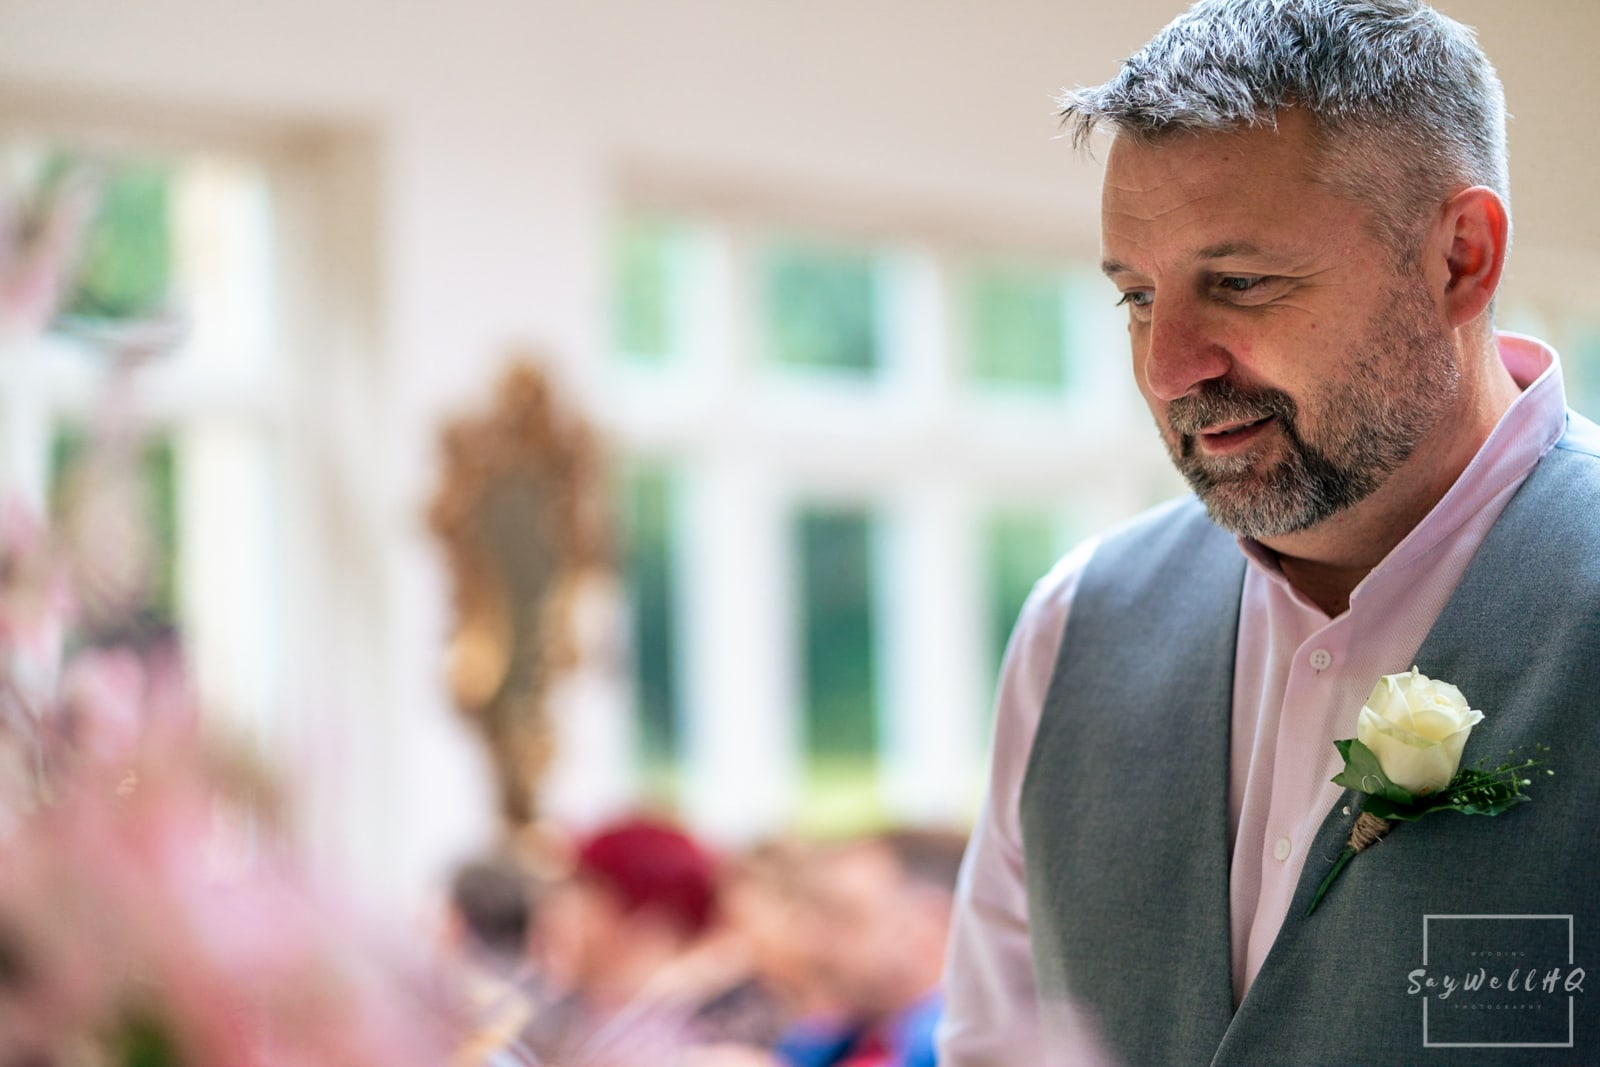 Woodborough Hall Wedding Photography - Groom looking nervous waiting for his bride to come down the wedding aisle